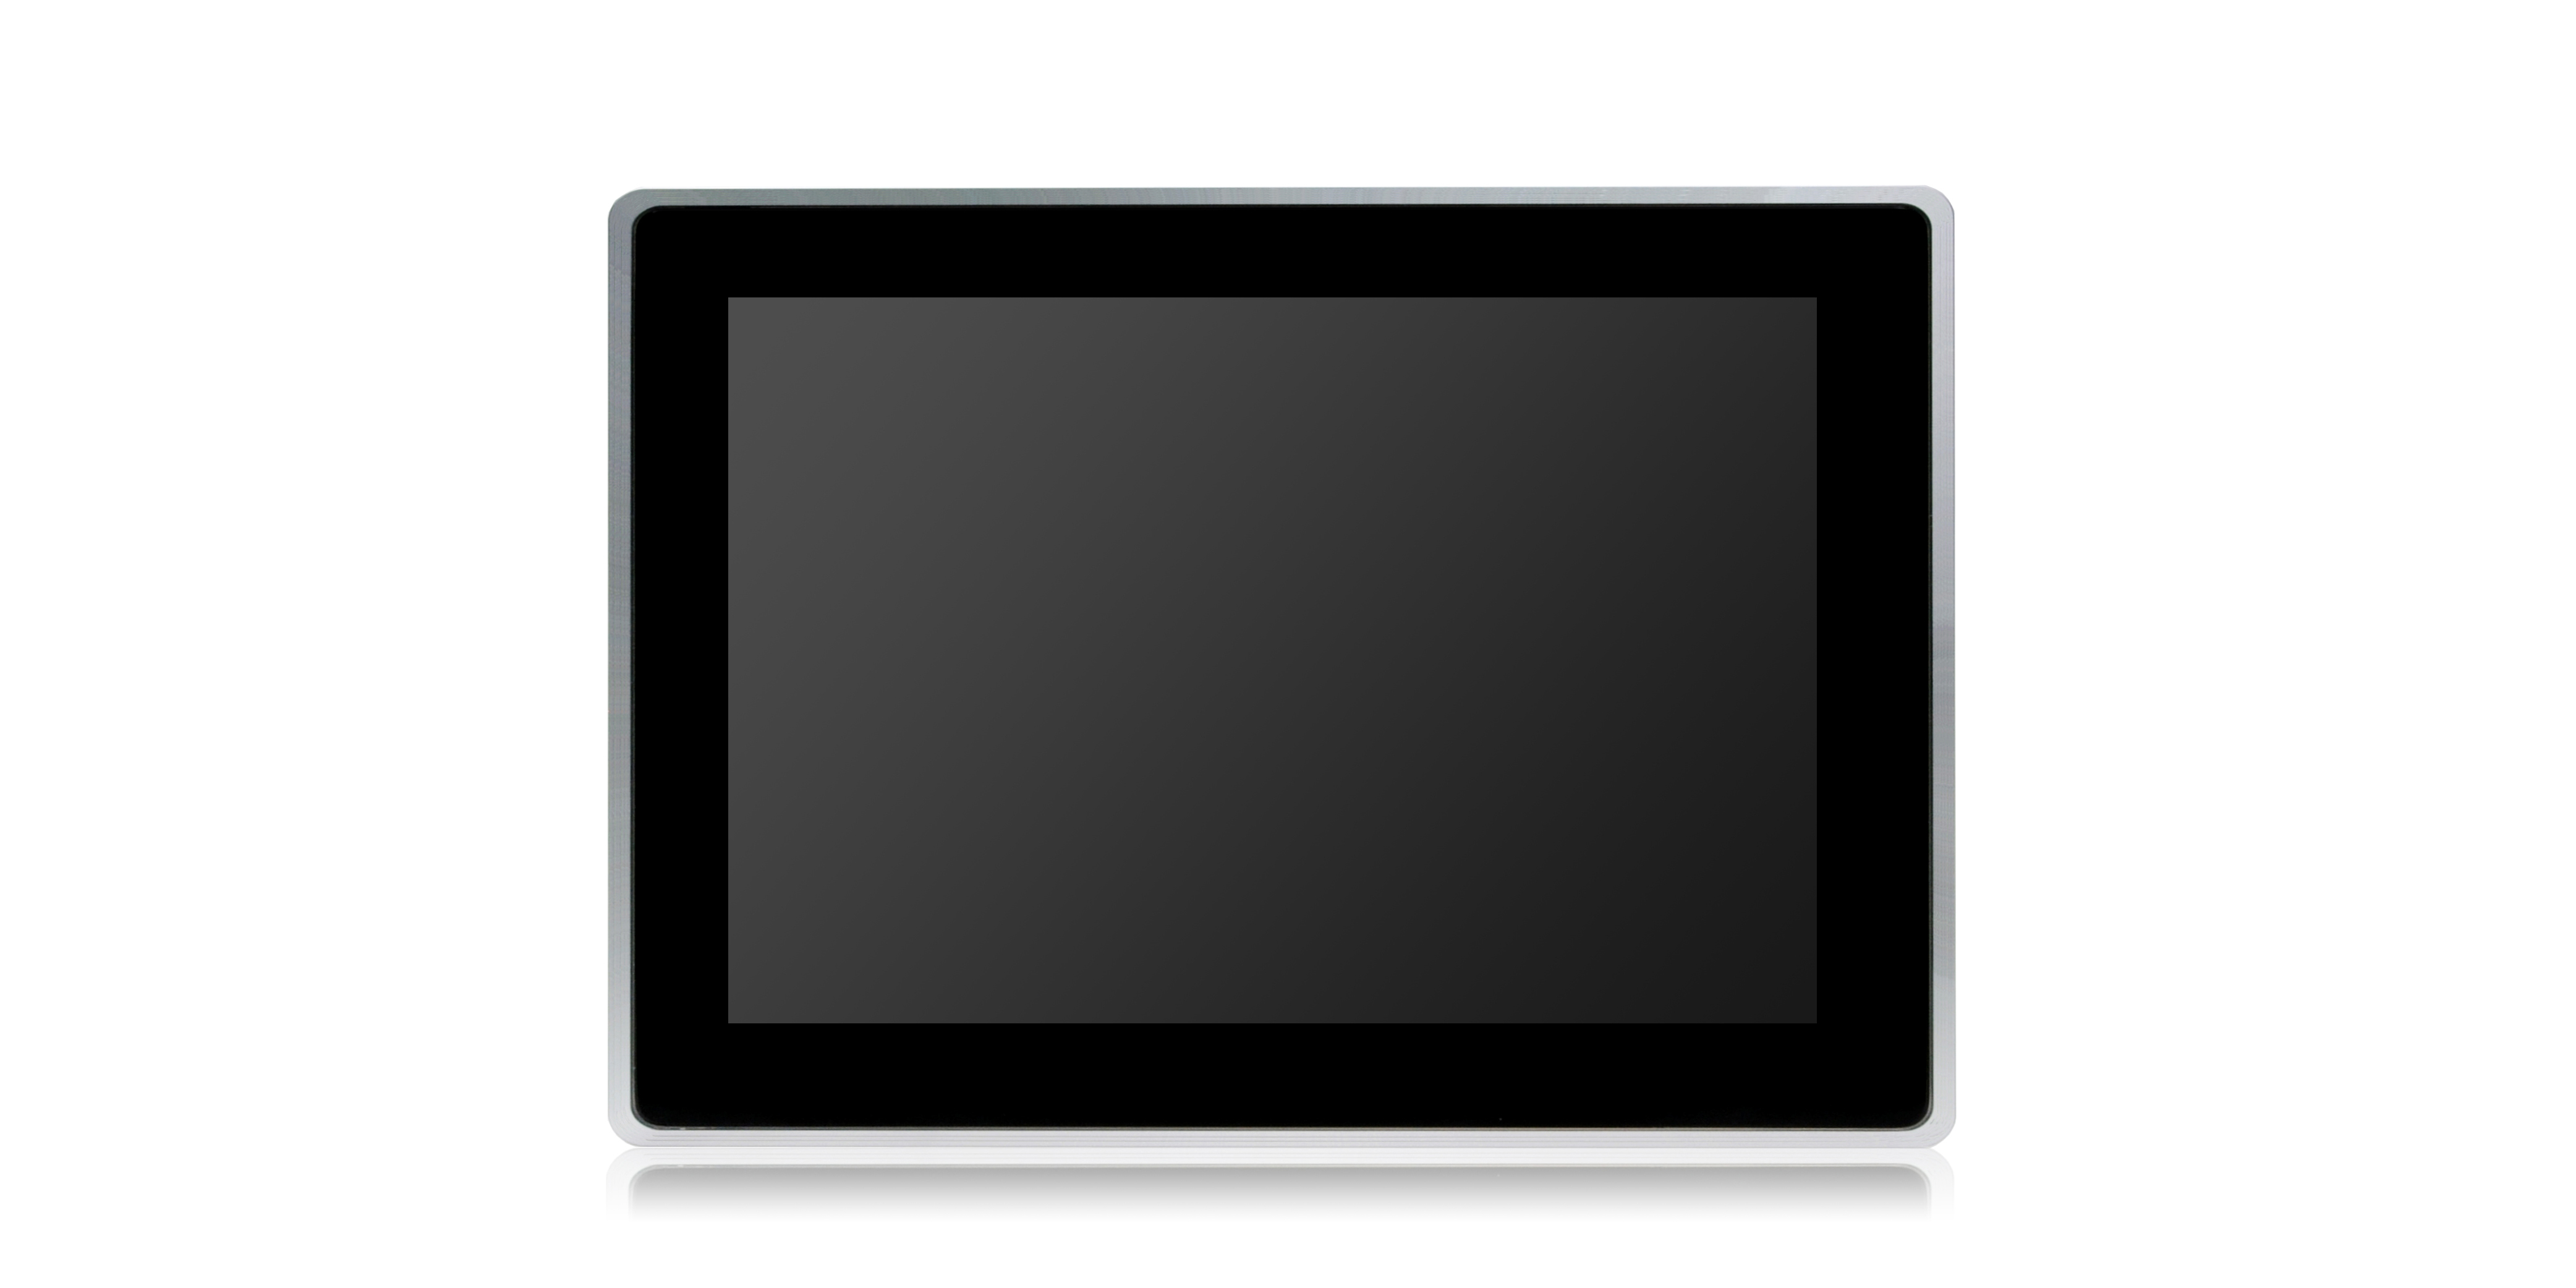 Surface-mounted touch panel PC with widescreen display